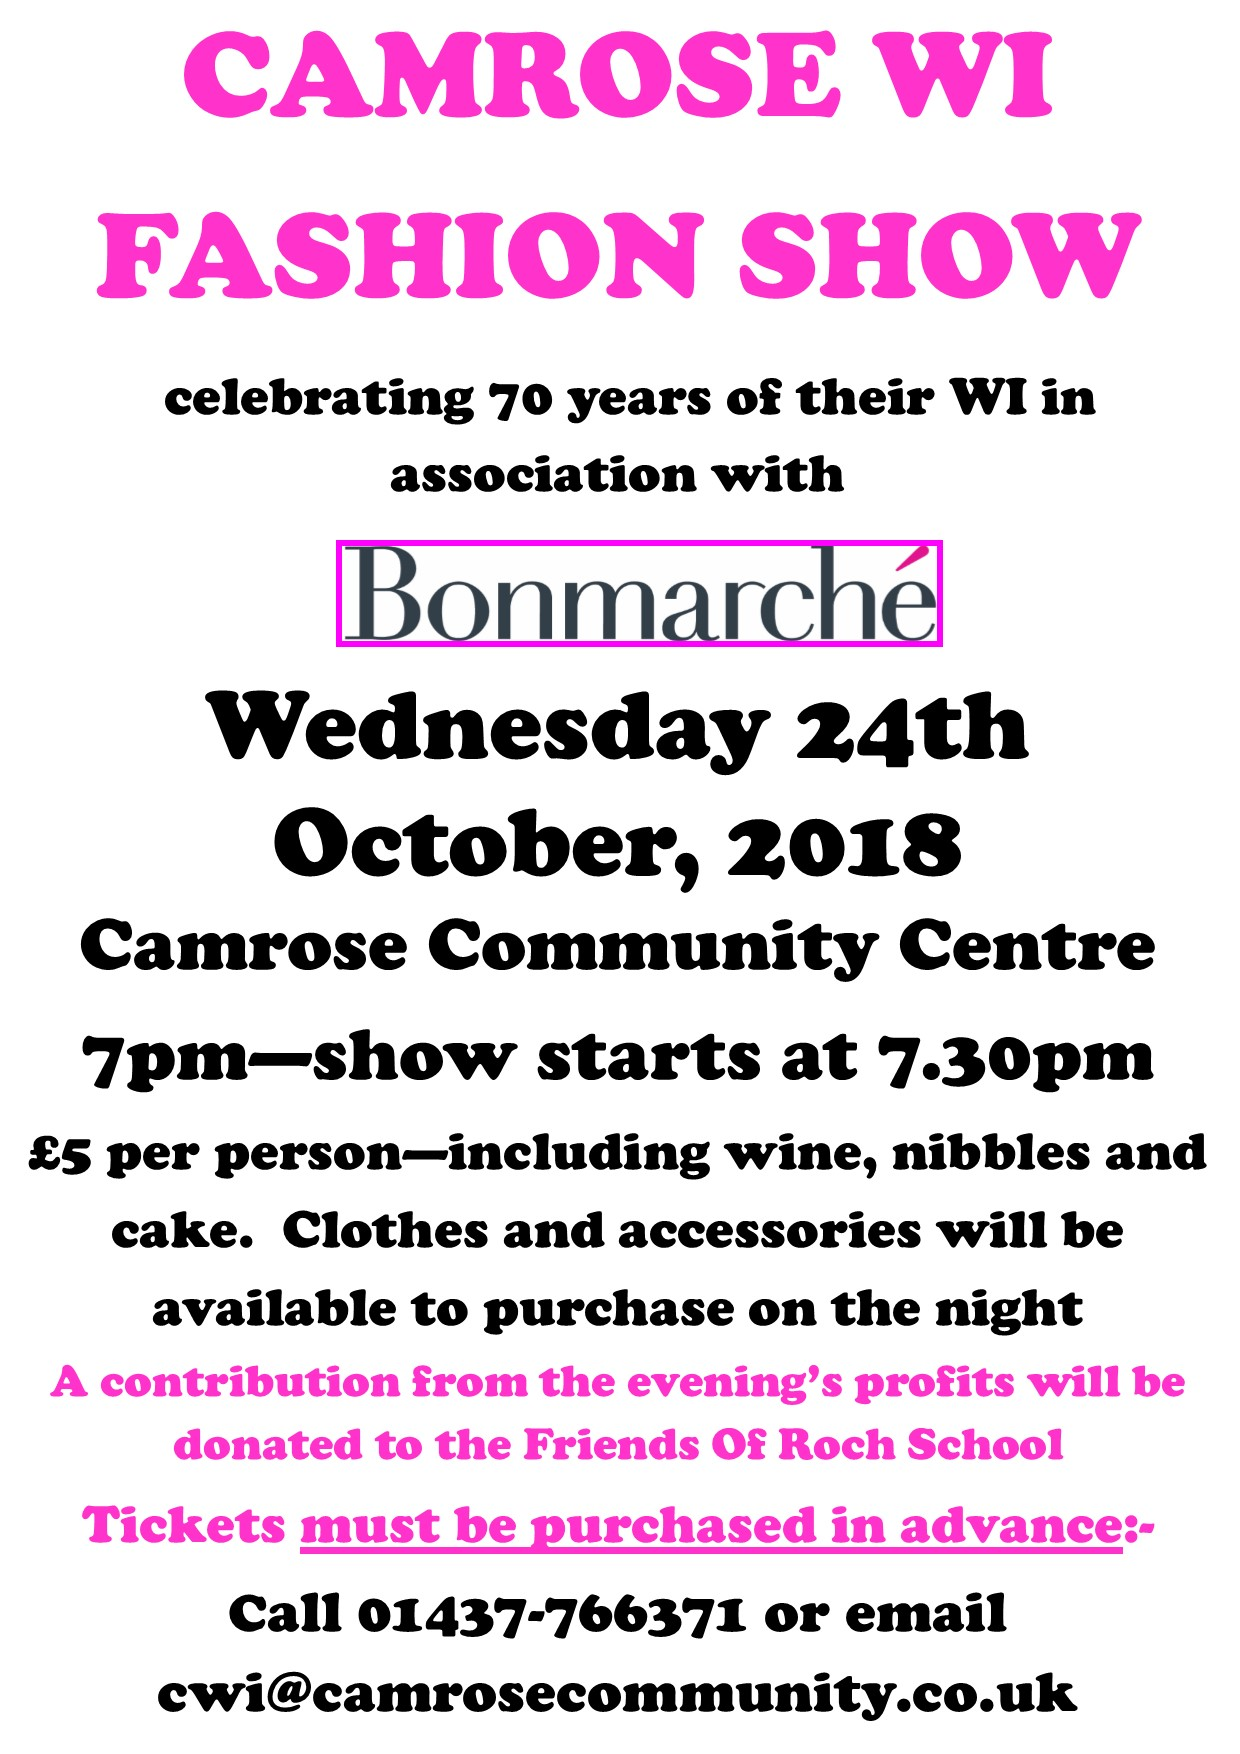 Wednesday 24th October - Camrose WI&Bon Marche Fashion Show